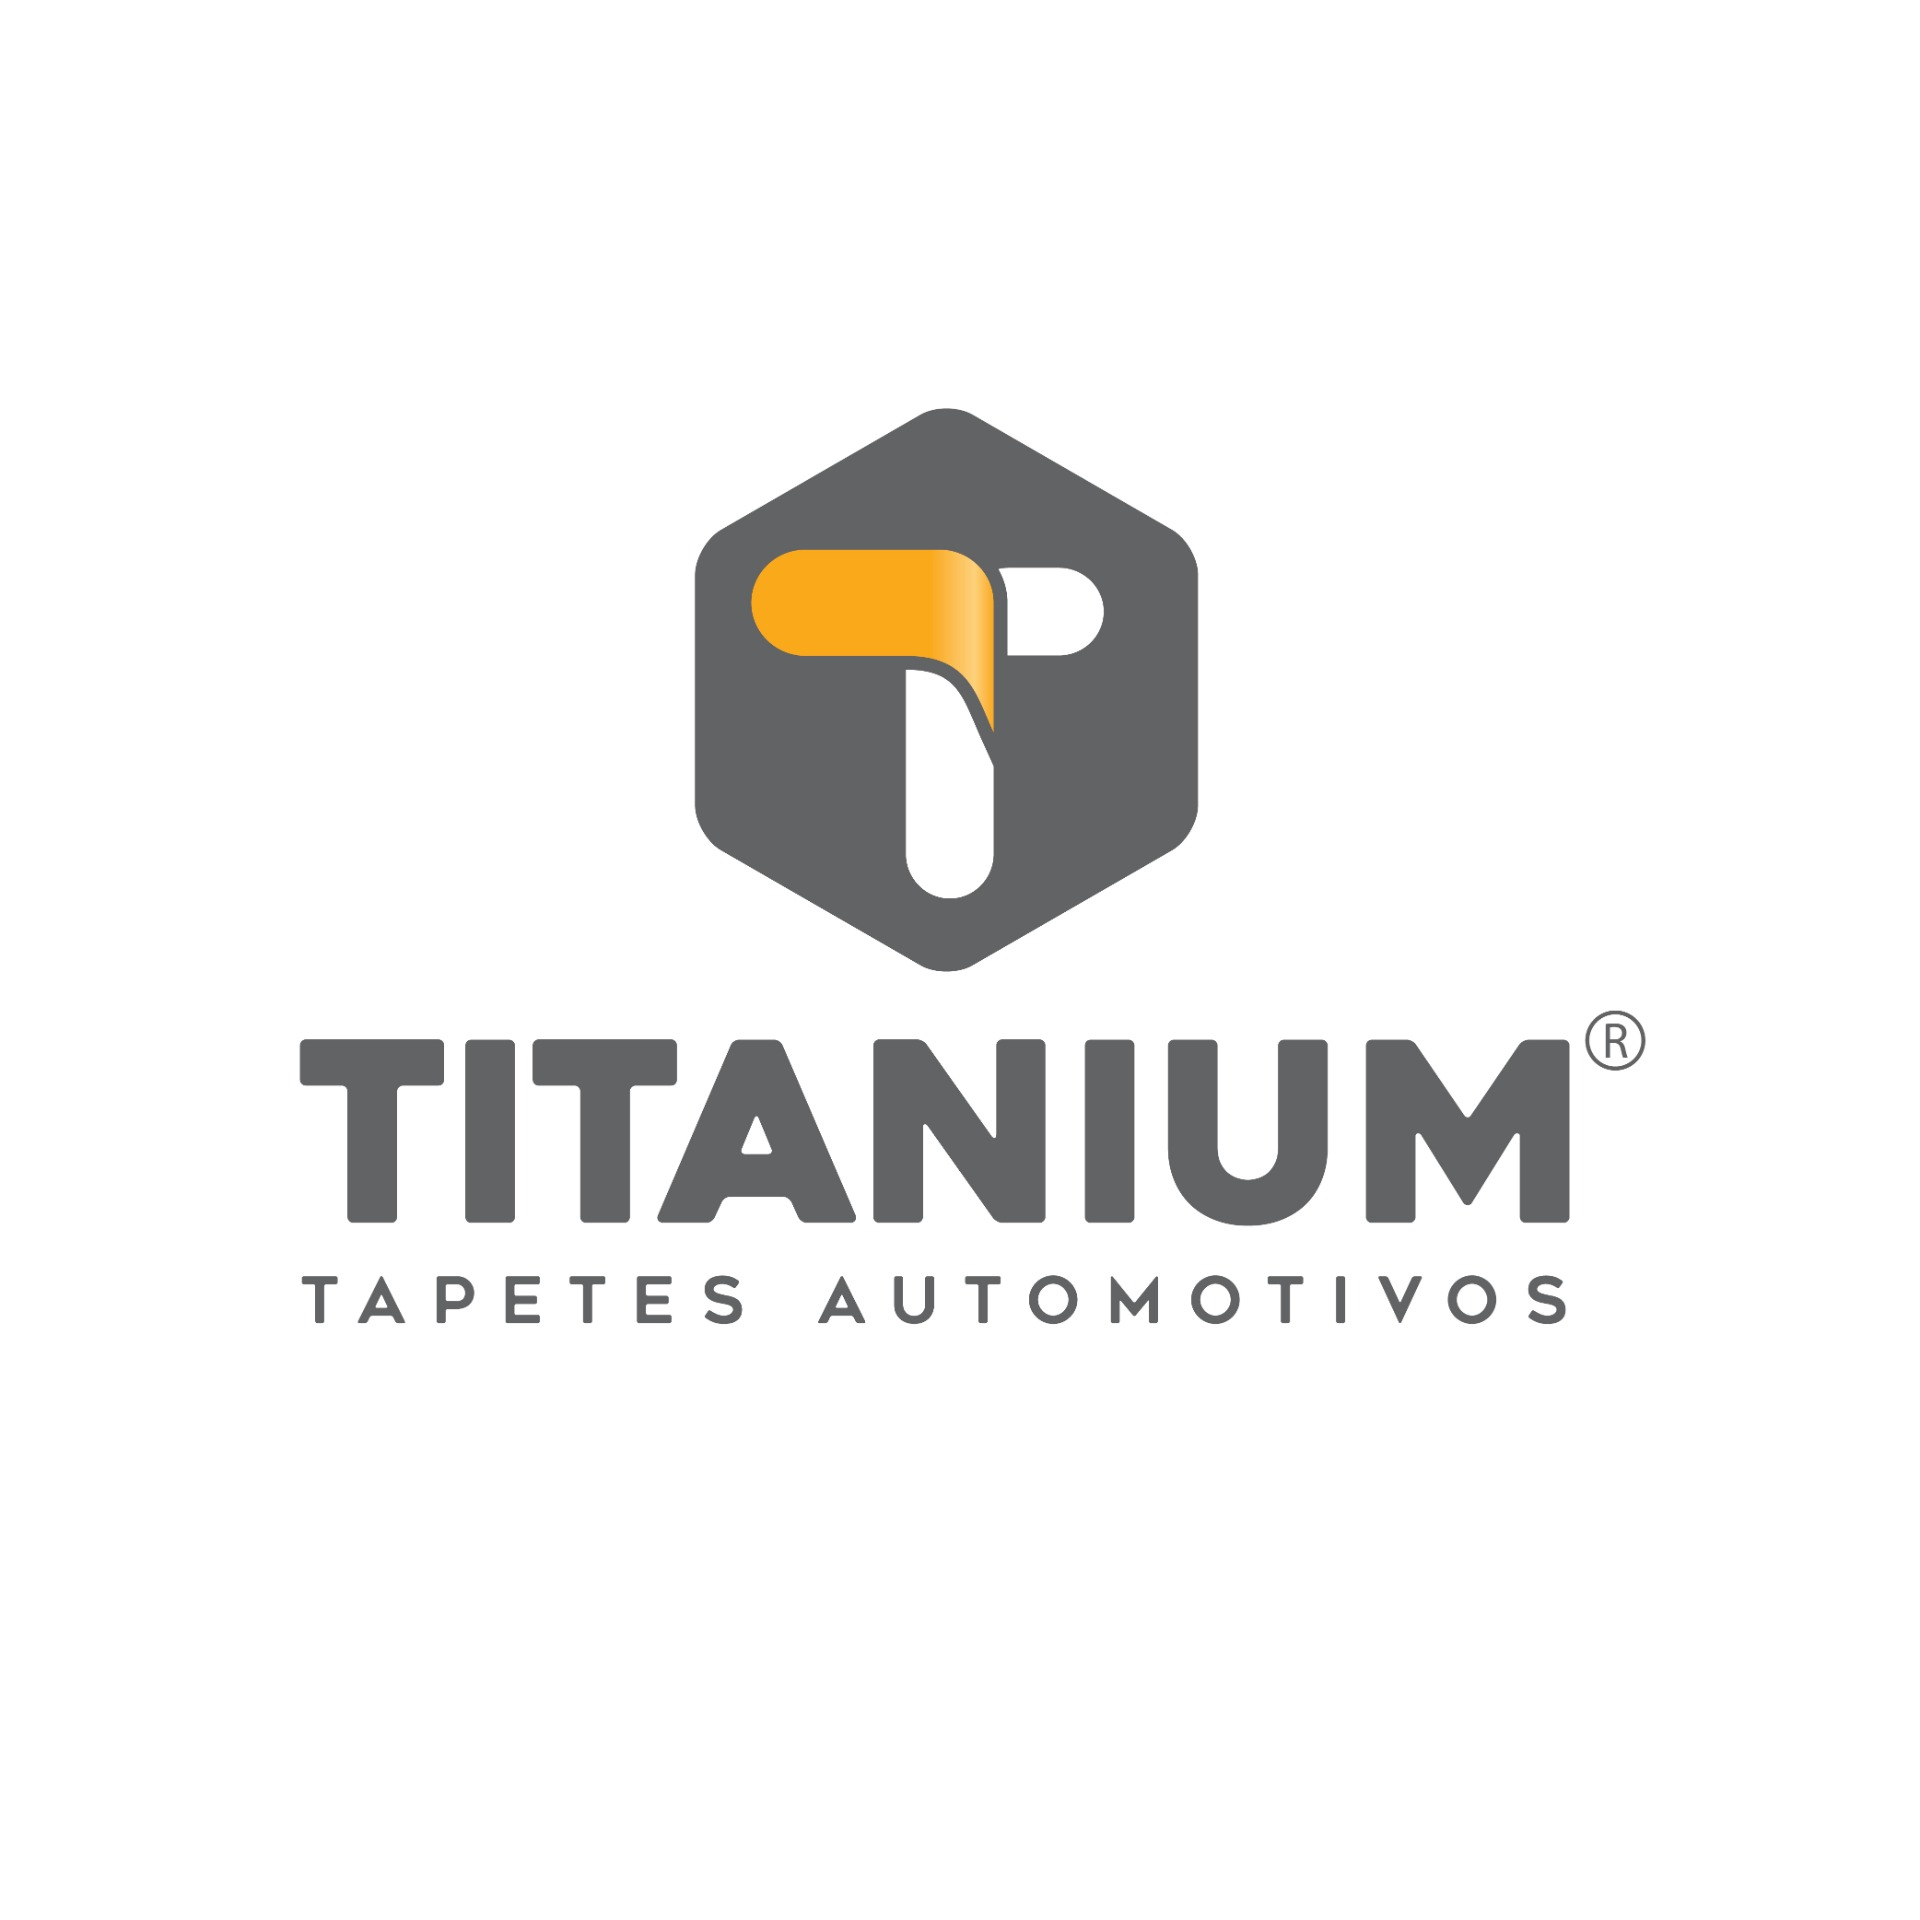 TITANIUM TAPETES AUTOMOTIVOS